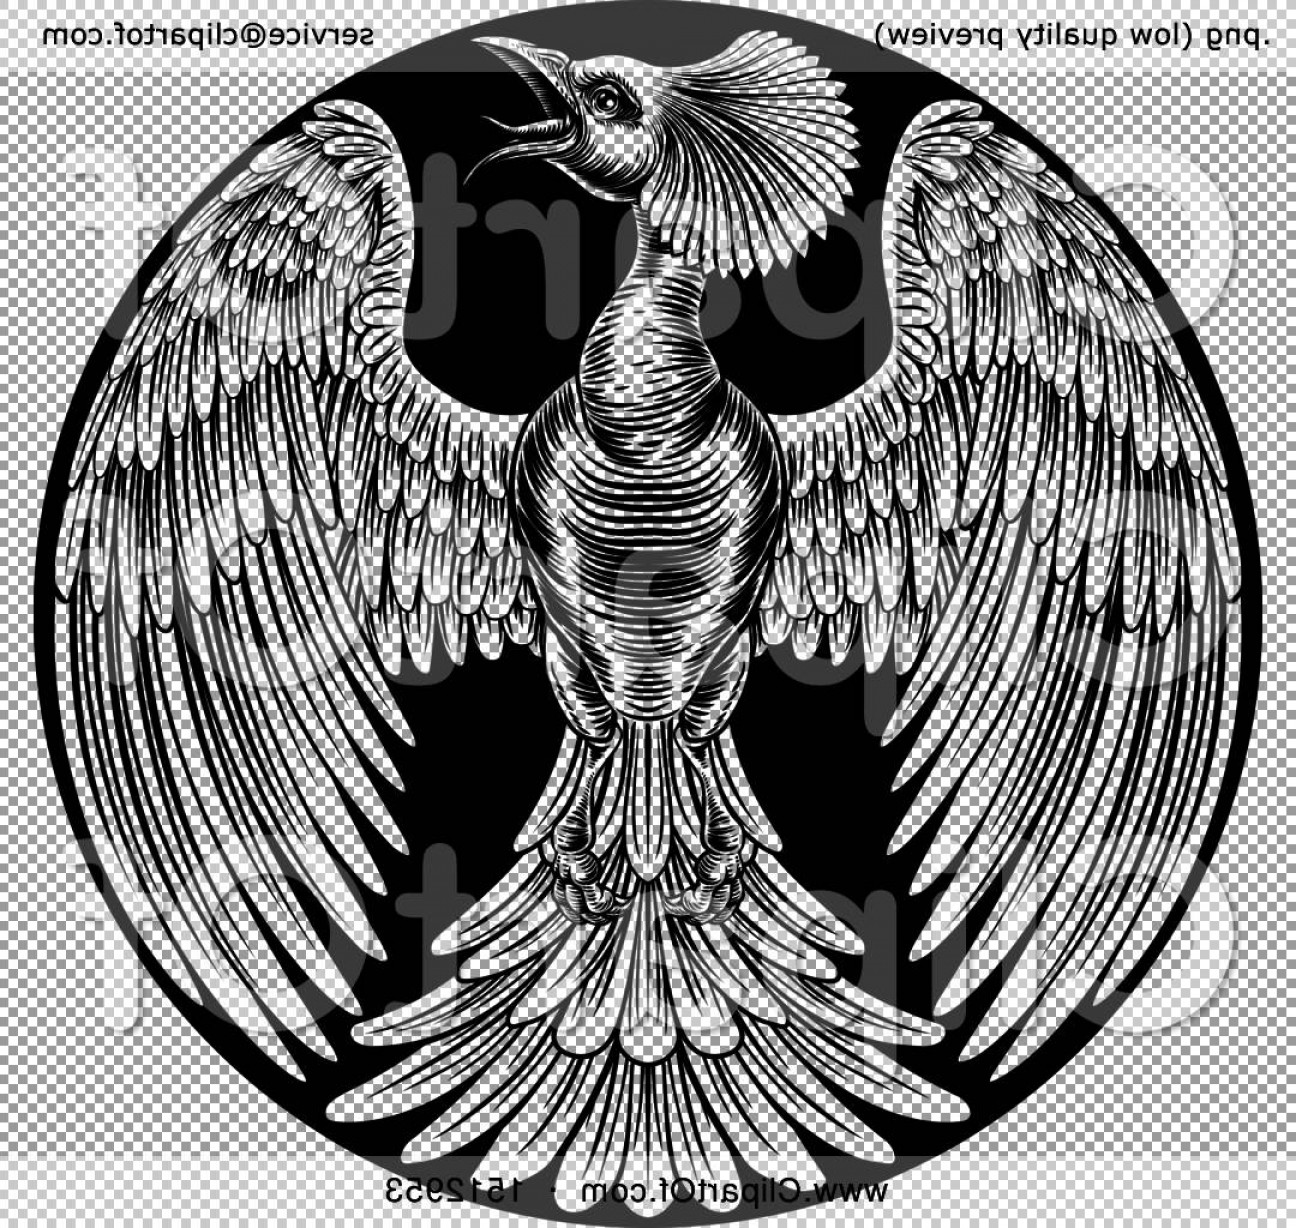 Firebird Vector Transparent Background: Black And White Woodcut Or Engraved Phoenix Firebird In A Circle